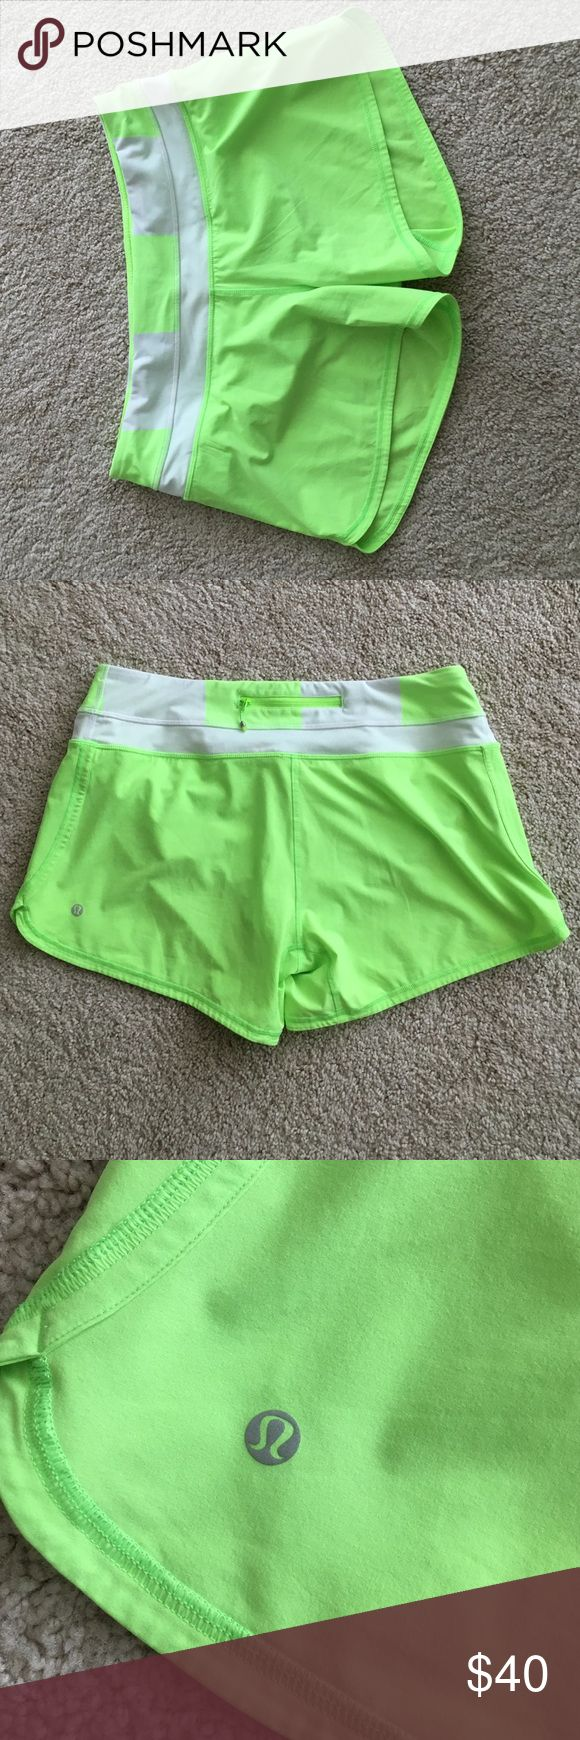 Lululemon faded zap neon green shorts size 10 Lululemon faded zap neon green shorts size 10. These shorts are in perfect condition! They have a built in liner. Sorry, no trades 🙅🏼 lululemon athletica Shorts